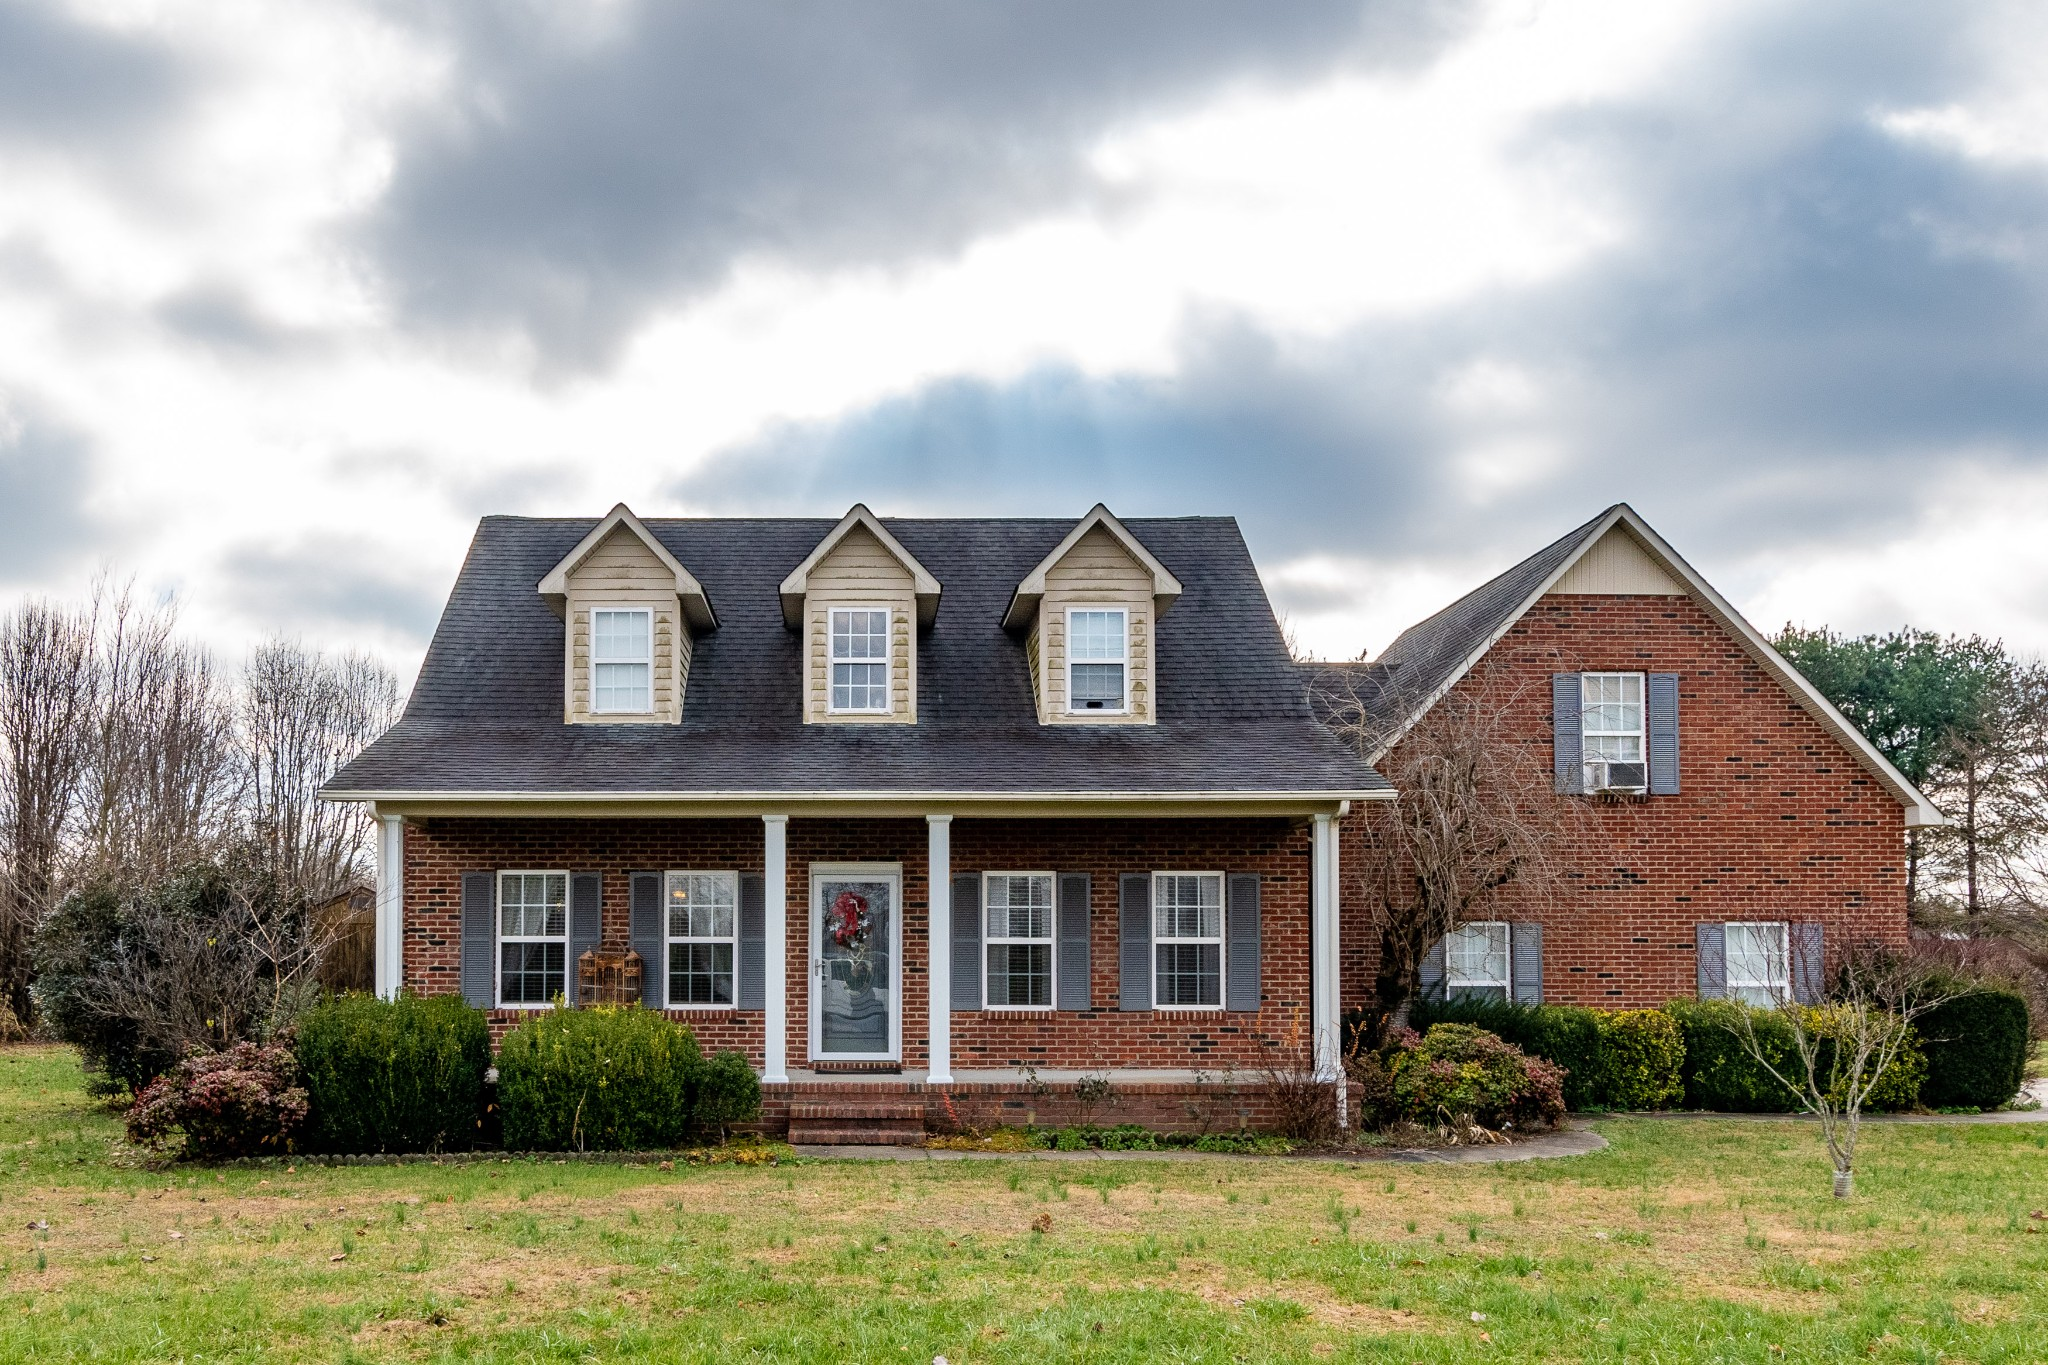 148 Angus Ln Property Photo - Manchester, TN real estate listing